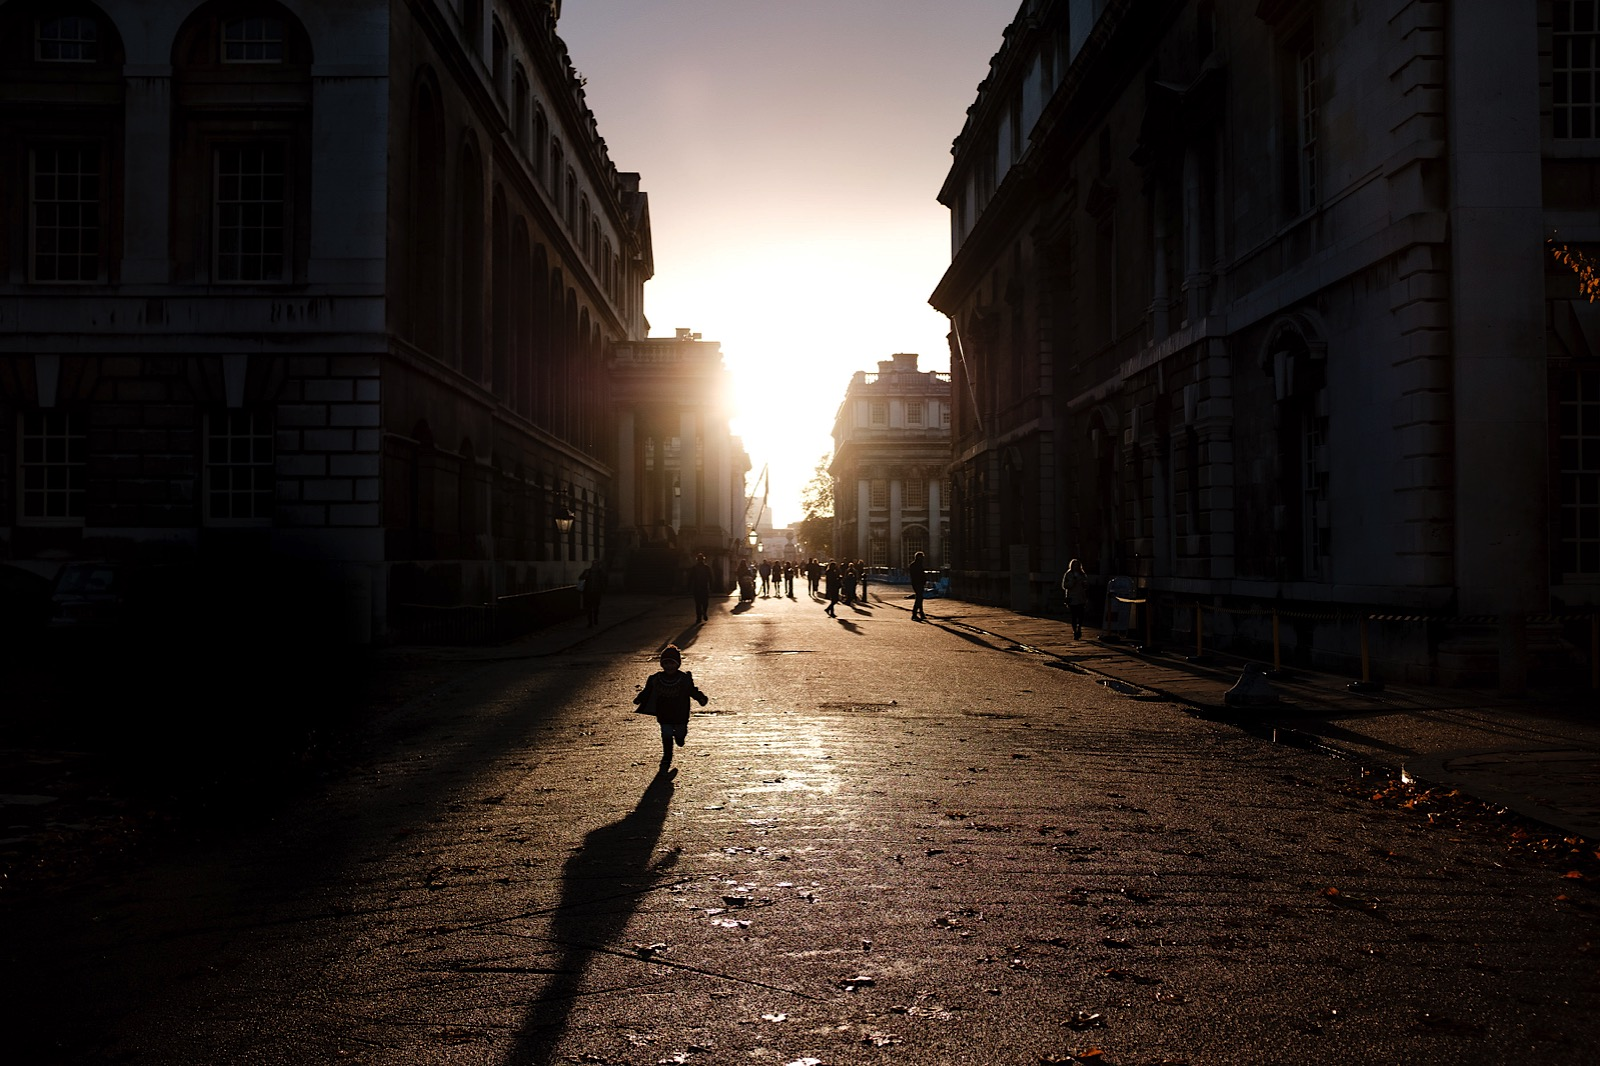 Child running through streets of London during sunset